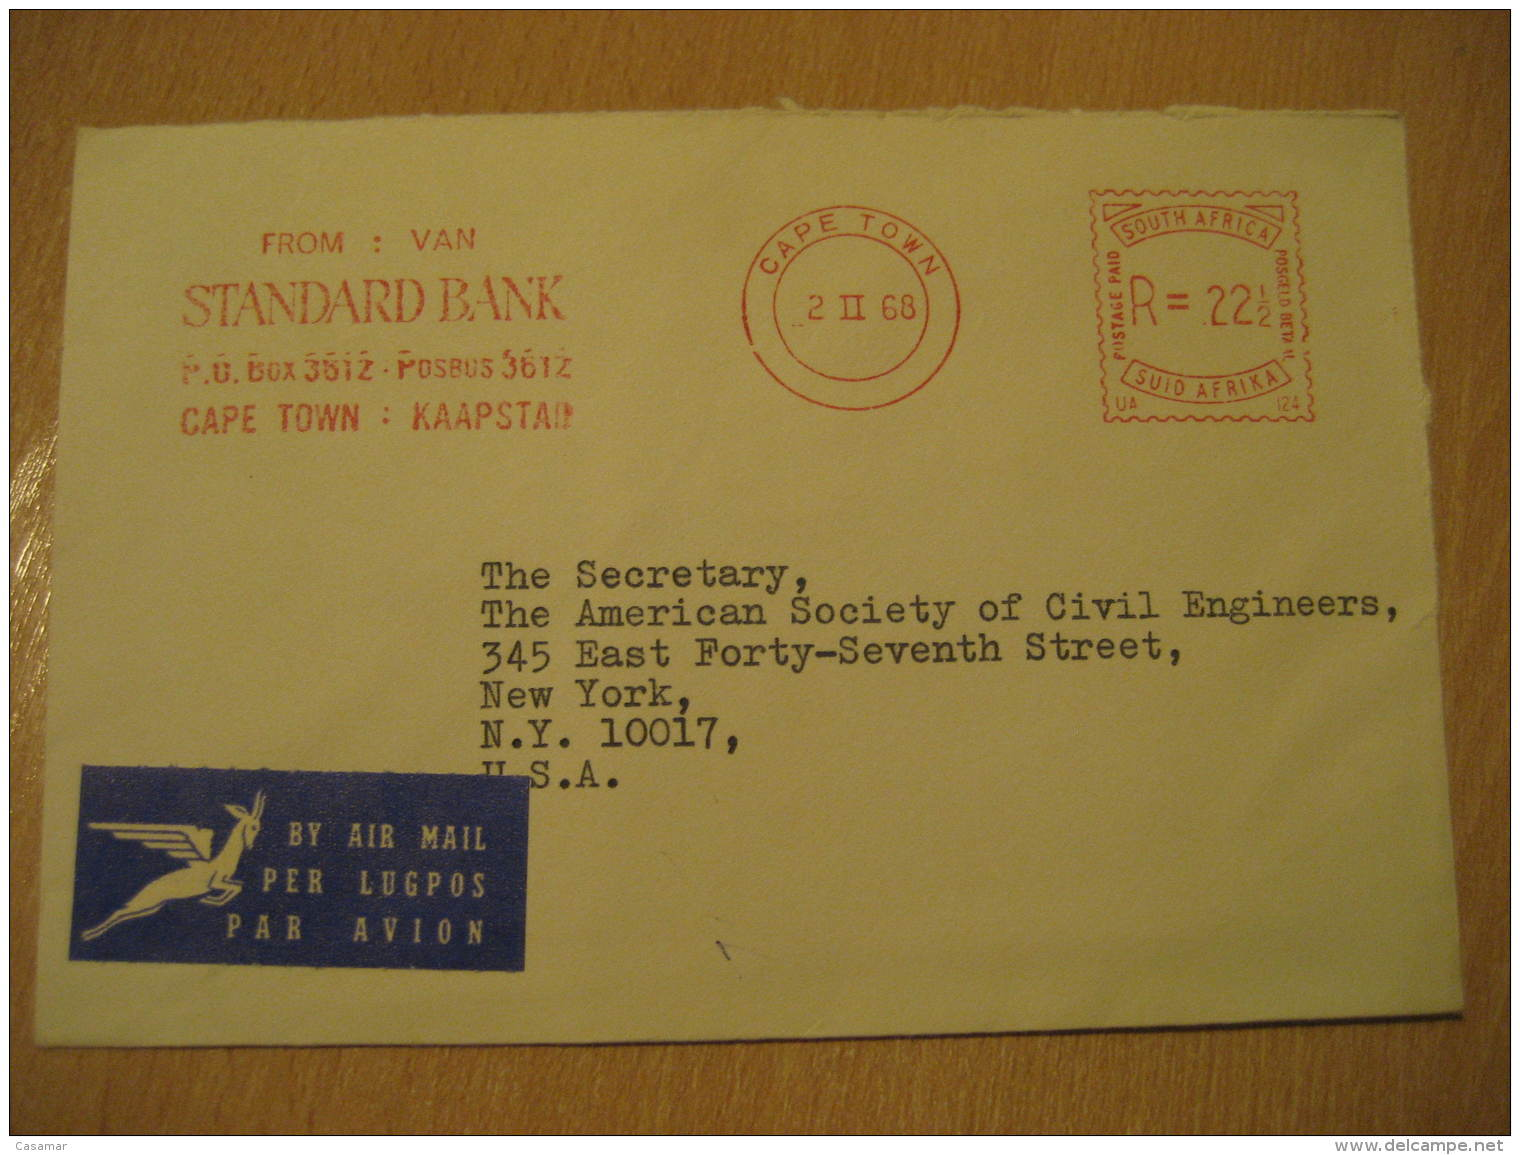 CAPE TOWN 1968 STANDARD BANK Metter Mail Cancel Air Mail Cover SOUTH AFRICA - Afrique Du Sud (1961-...)